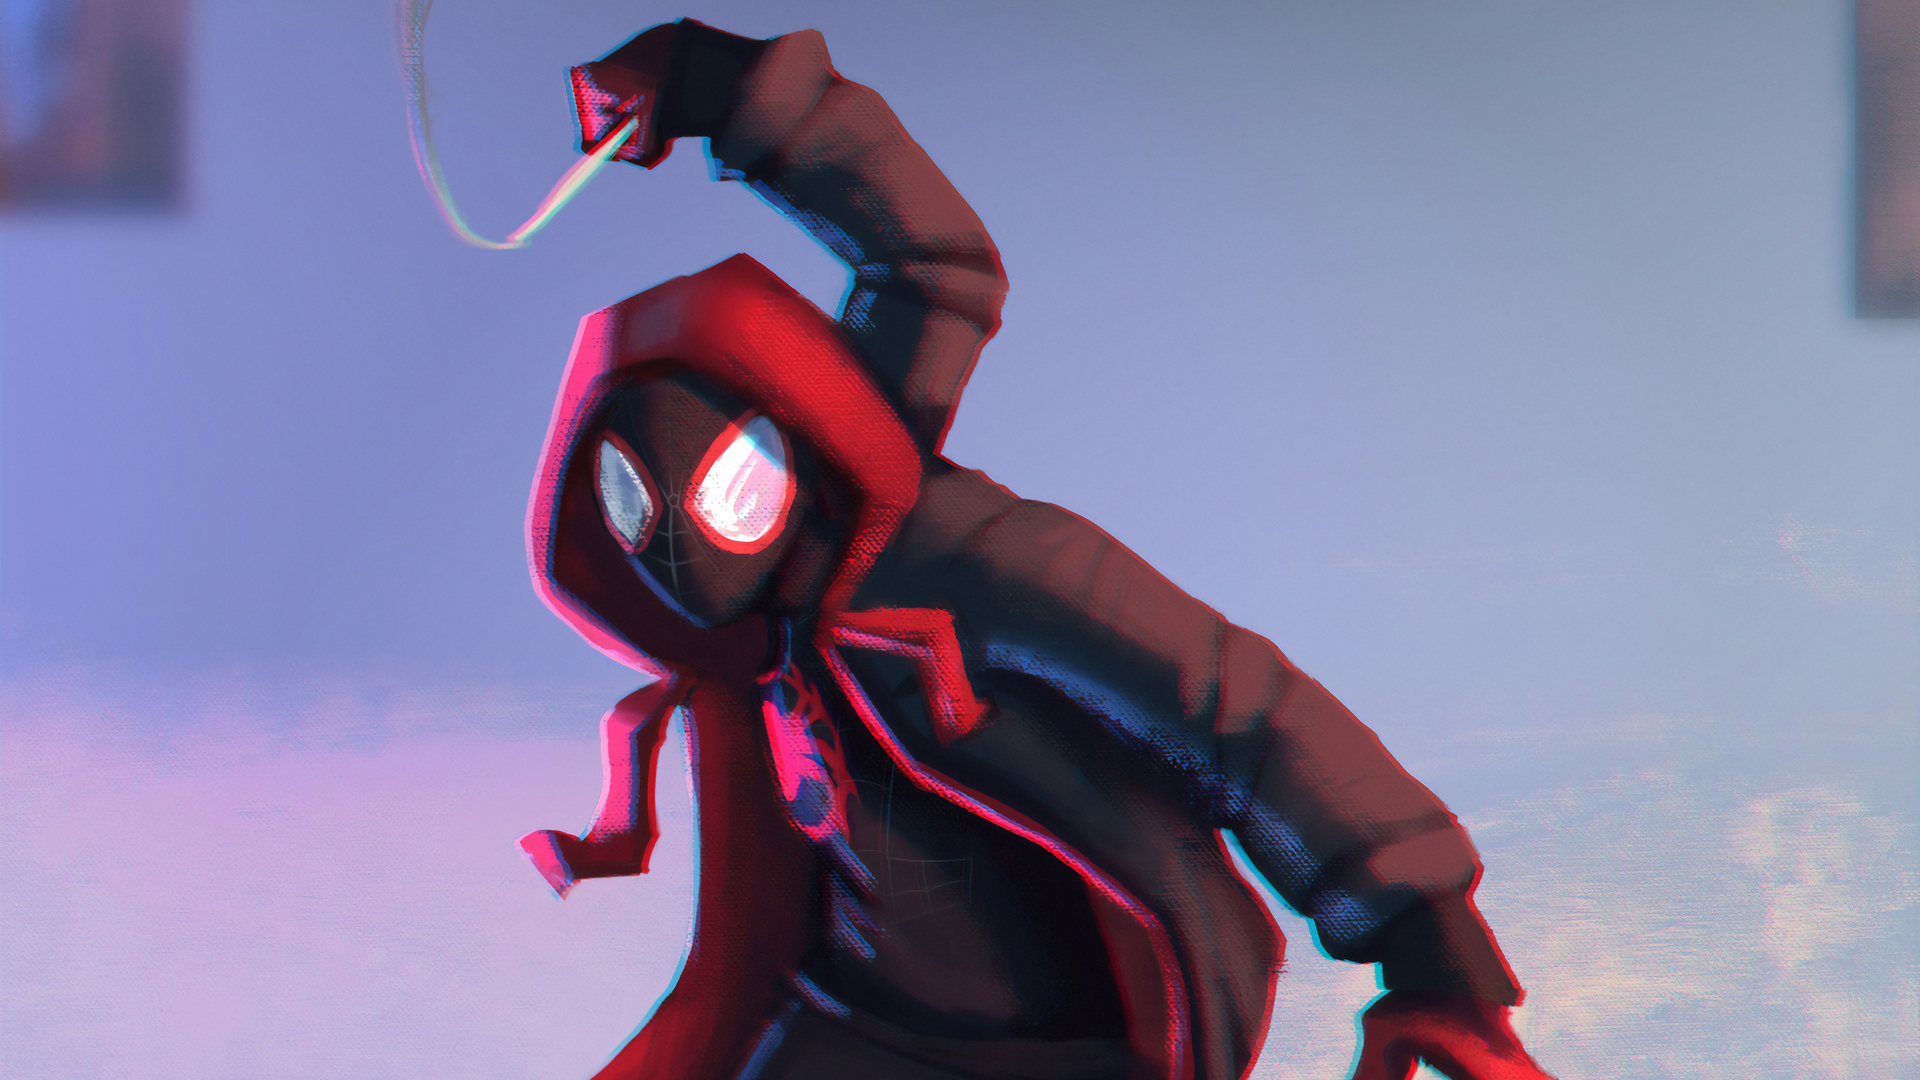 1920x1080 Art Spiderman Miles Morales 4k Laptop Full Hd 1080p Hd